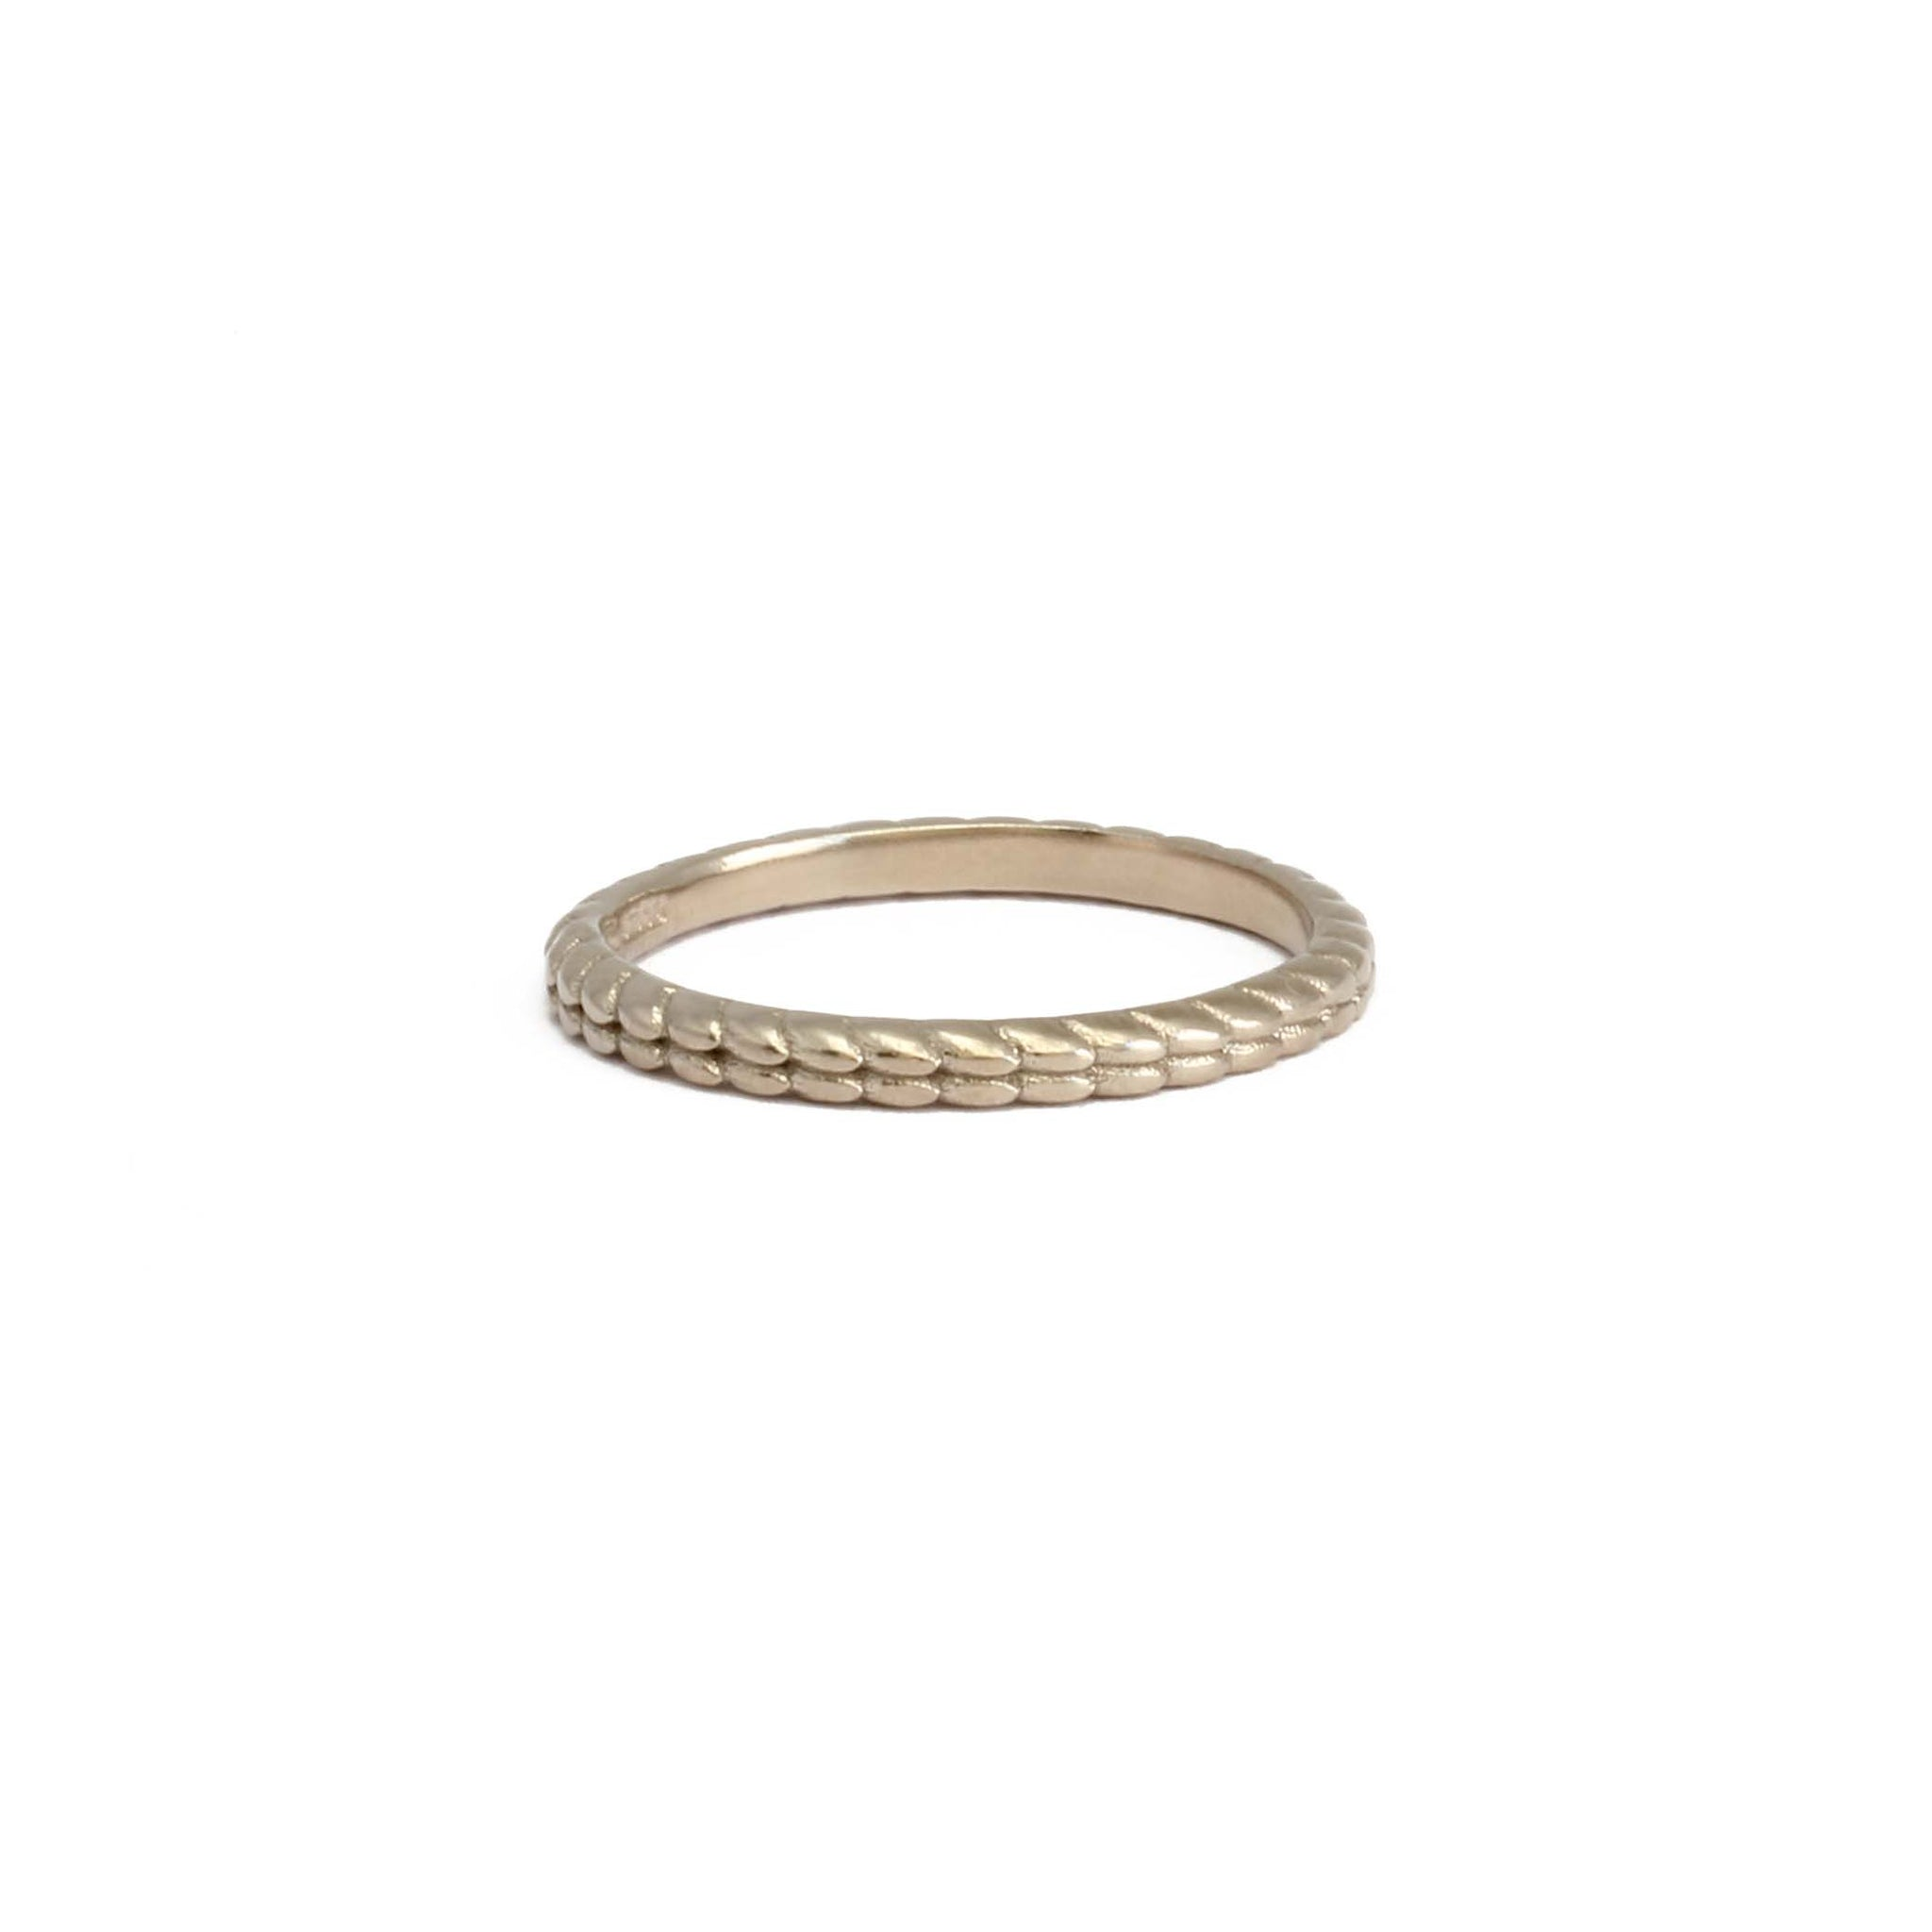 2mm Tagmata Band 18ct gold